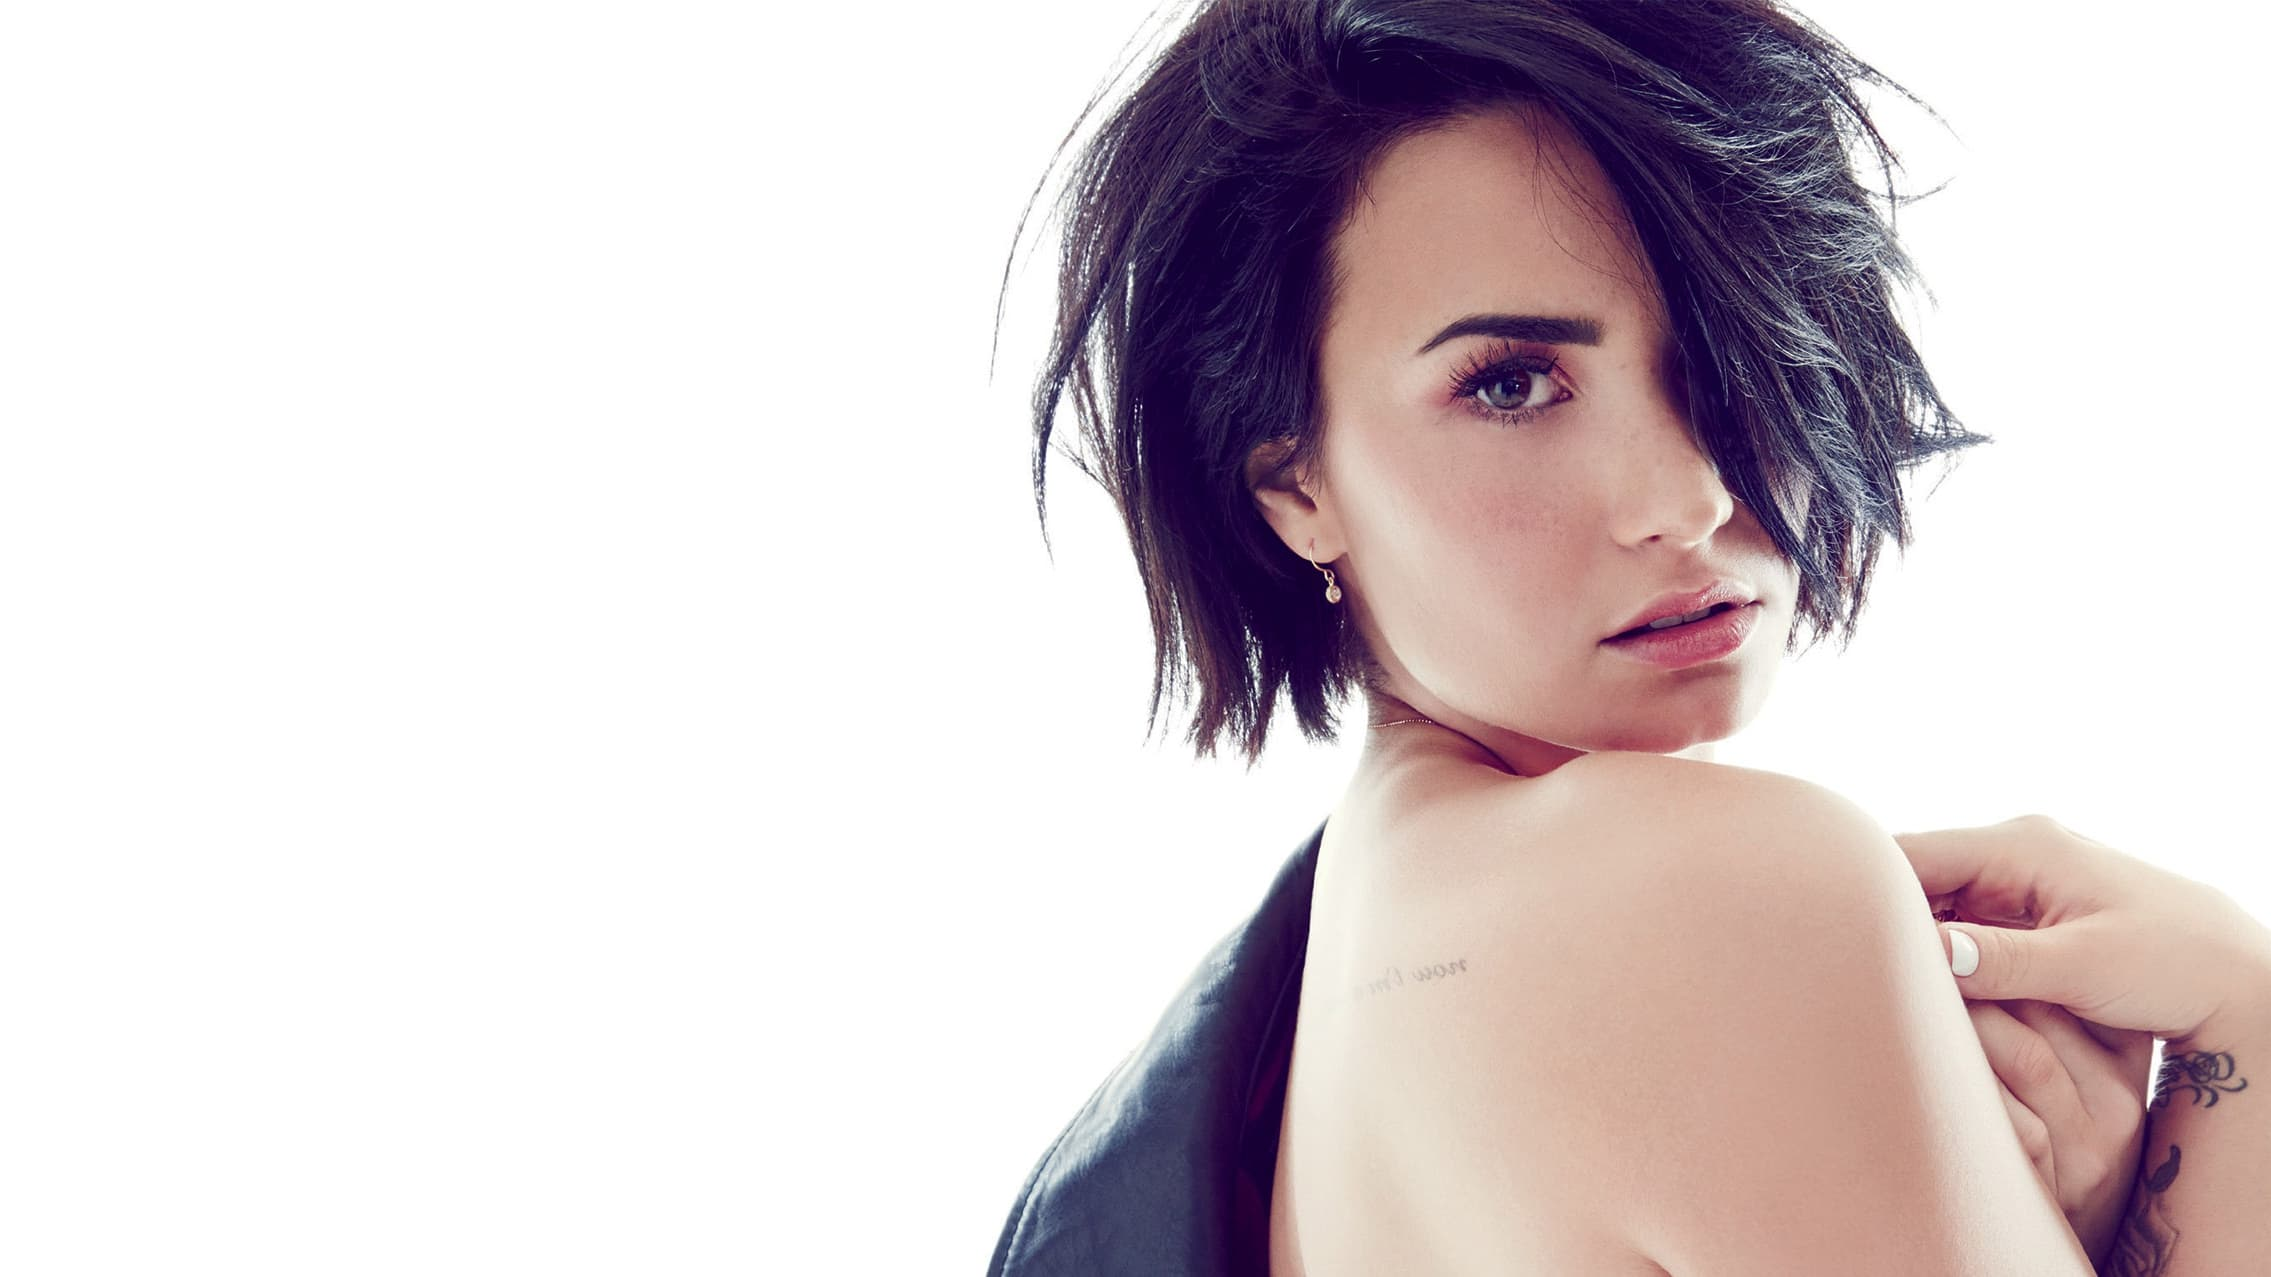 Demi Lovato 20  Wallpapers HD Desktop High Resolution